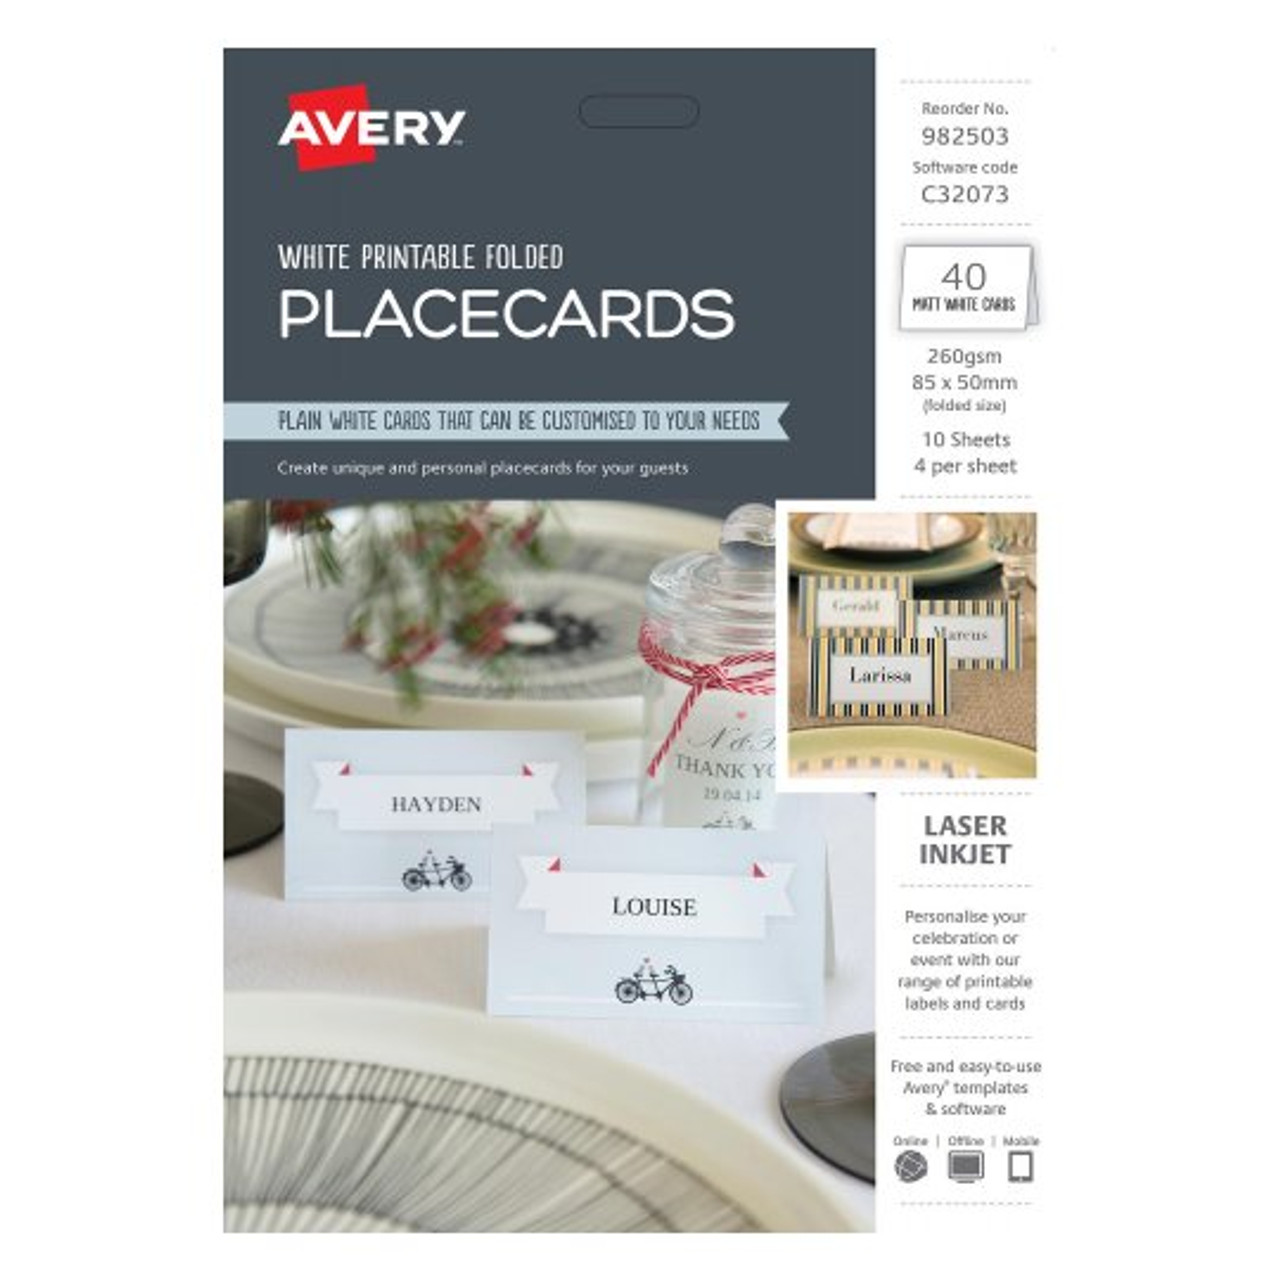 picture regarding Avery Printable Place Cards titled AVERY 982503 FOLDED Position Playing cards C32073 85 X 50 PACK 40 4UP